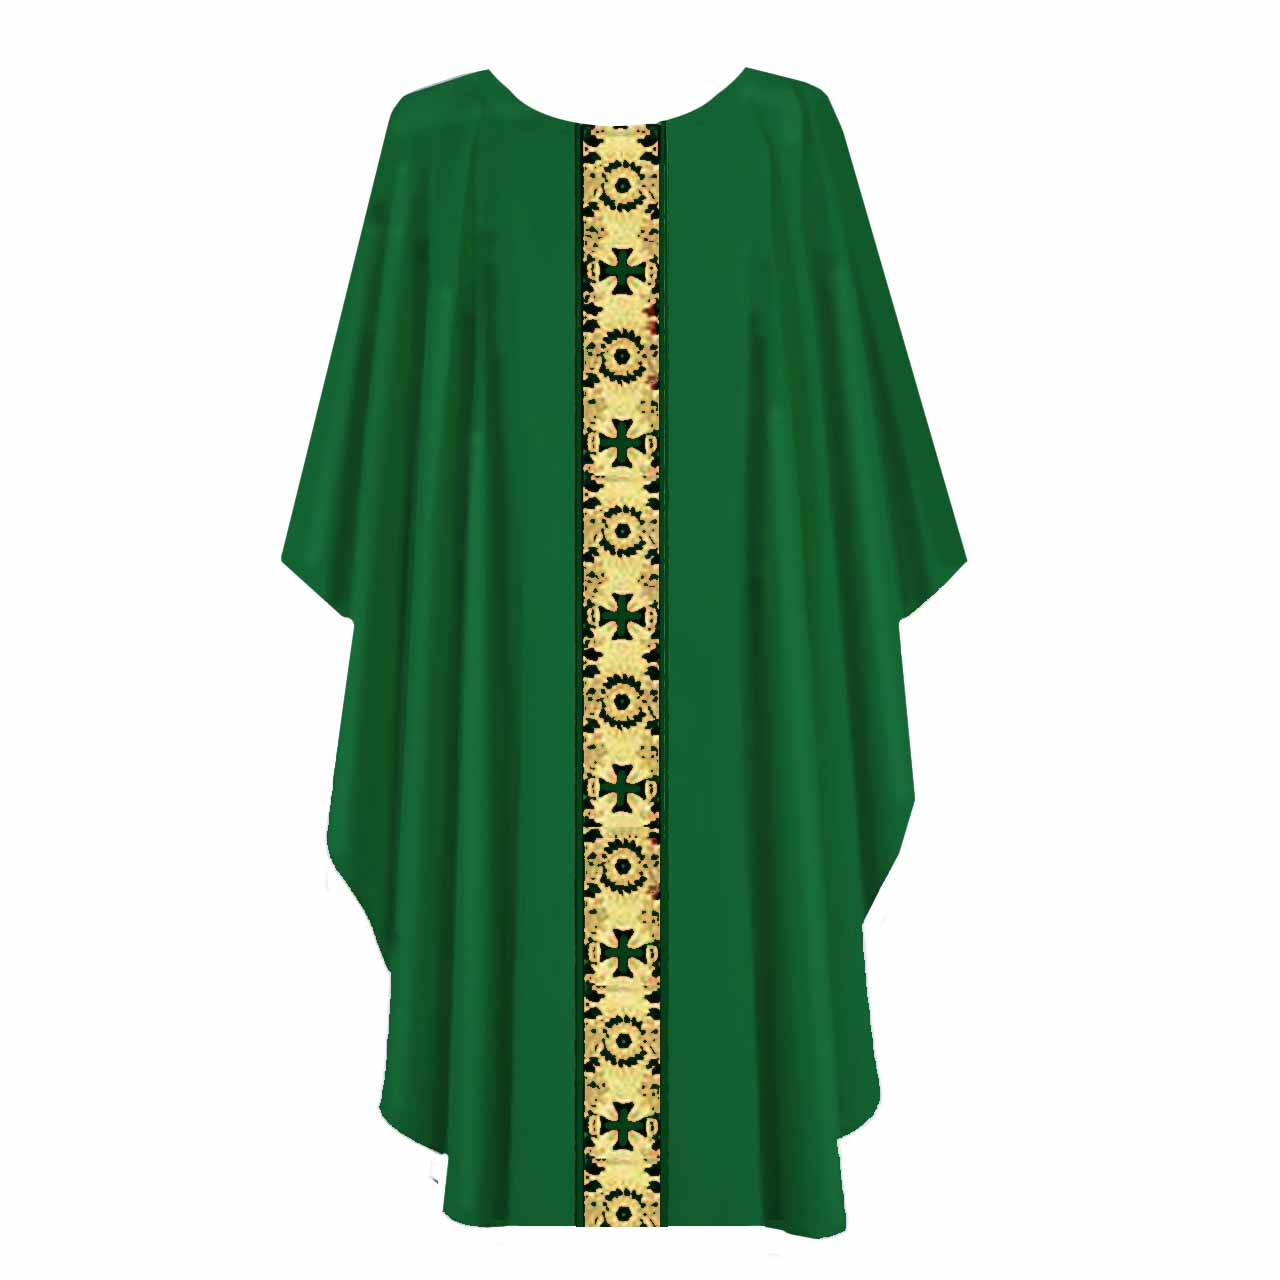 850 Green Chasuble from Harbro